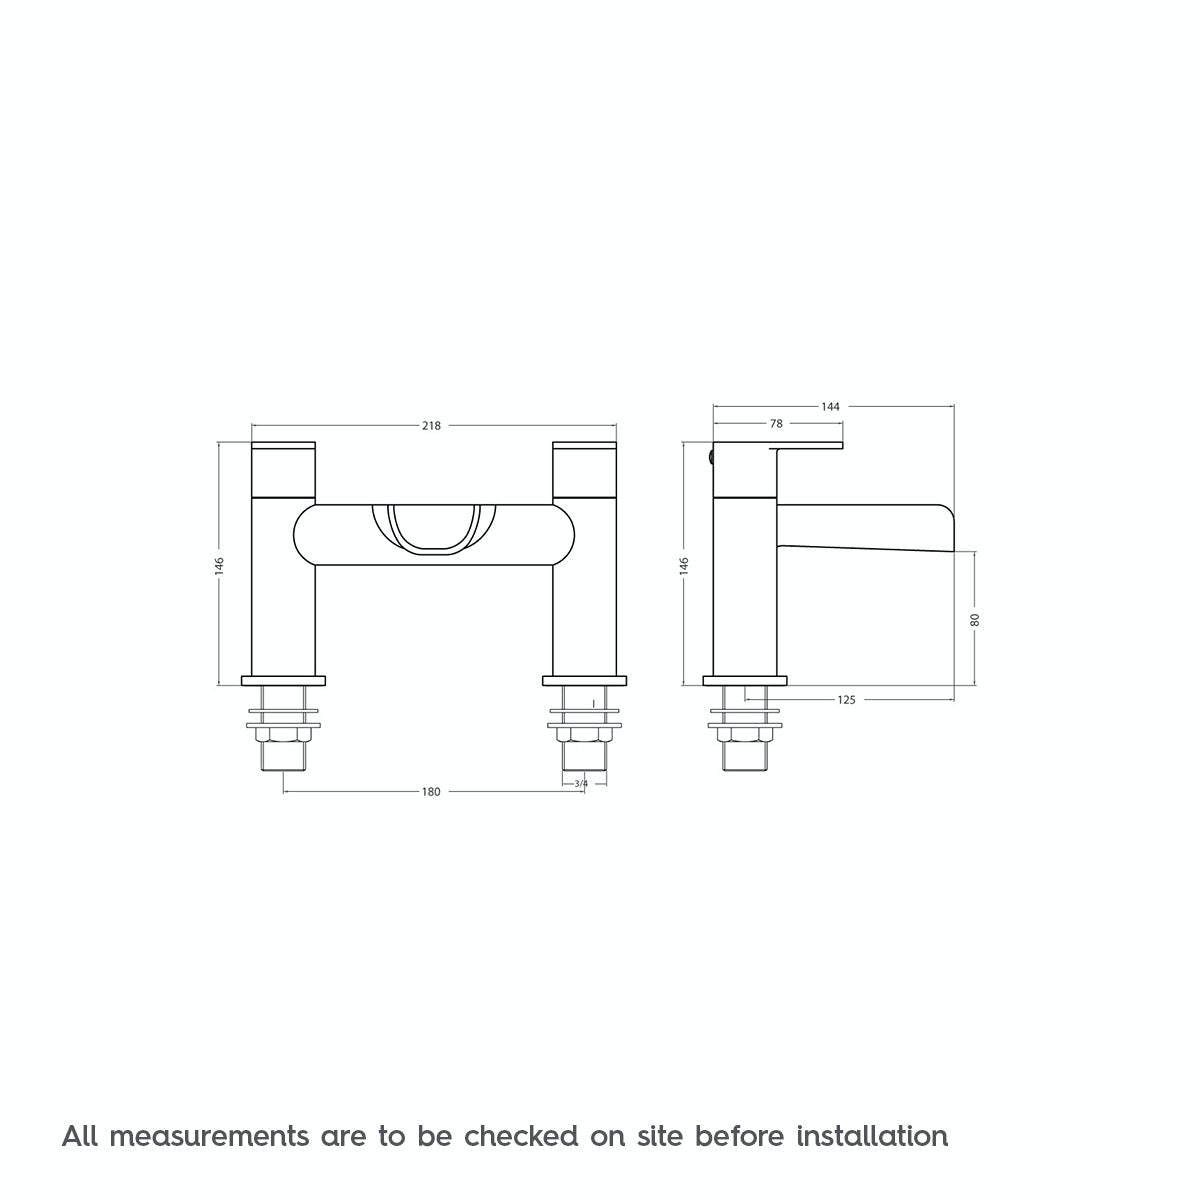 Dimensions for Orchard Eden waterfall bath mixer tap